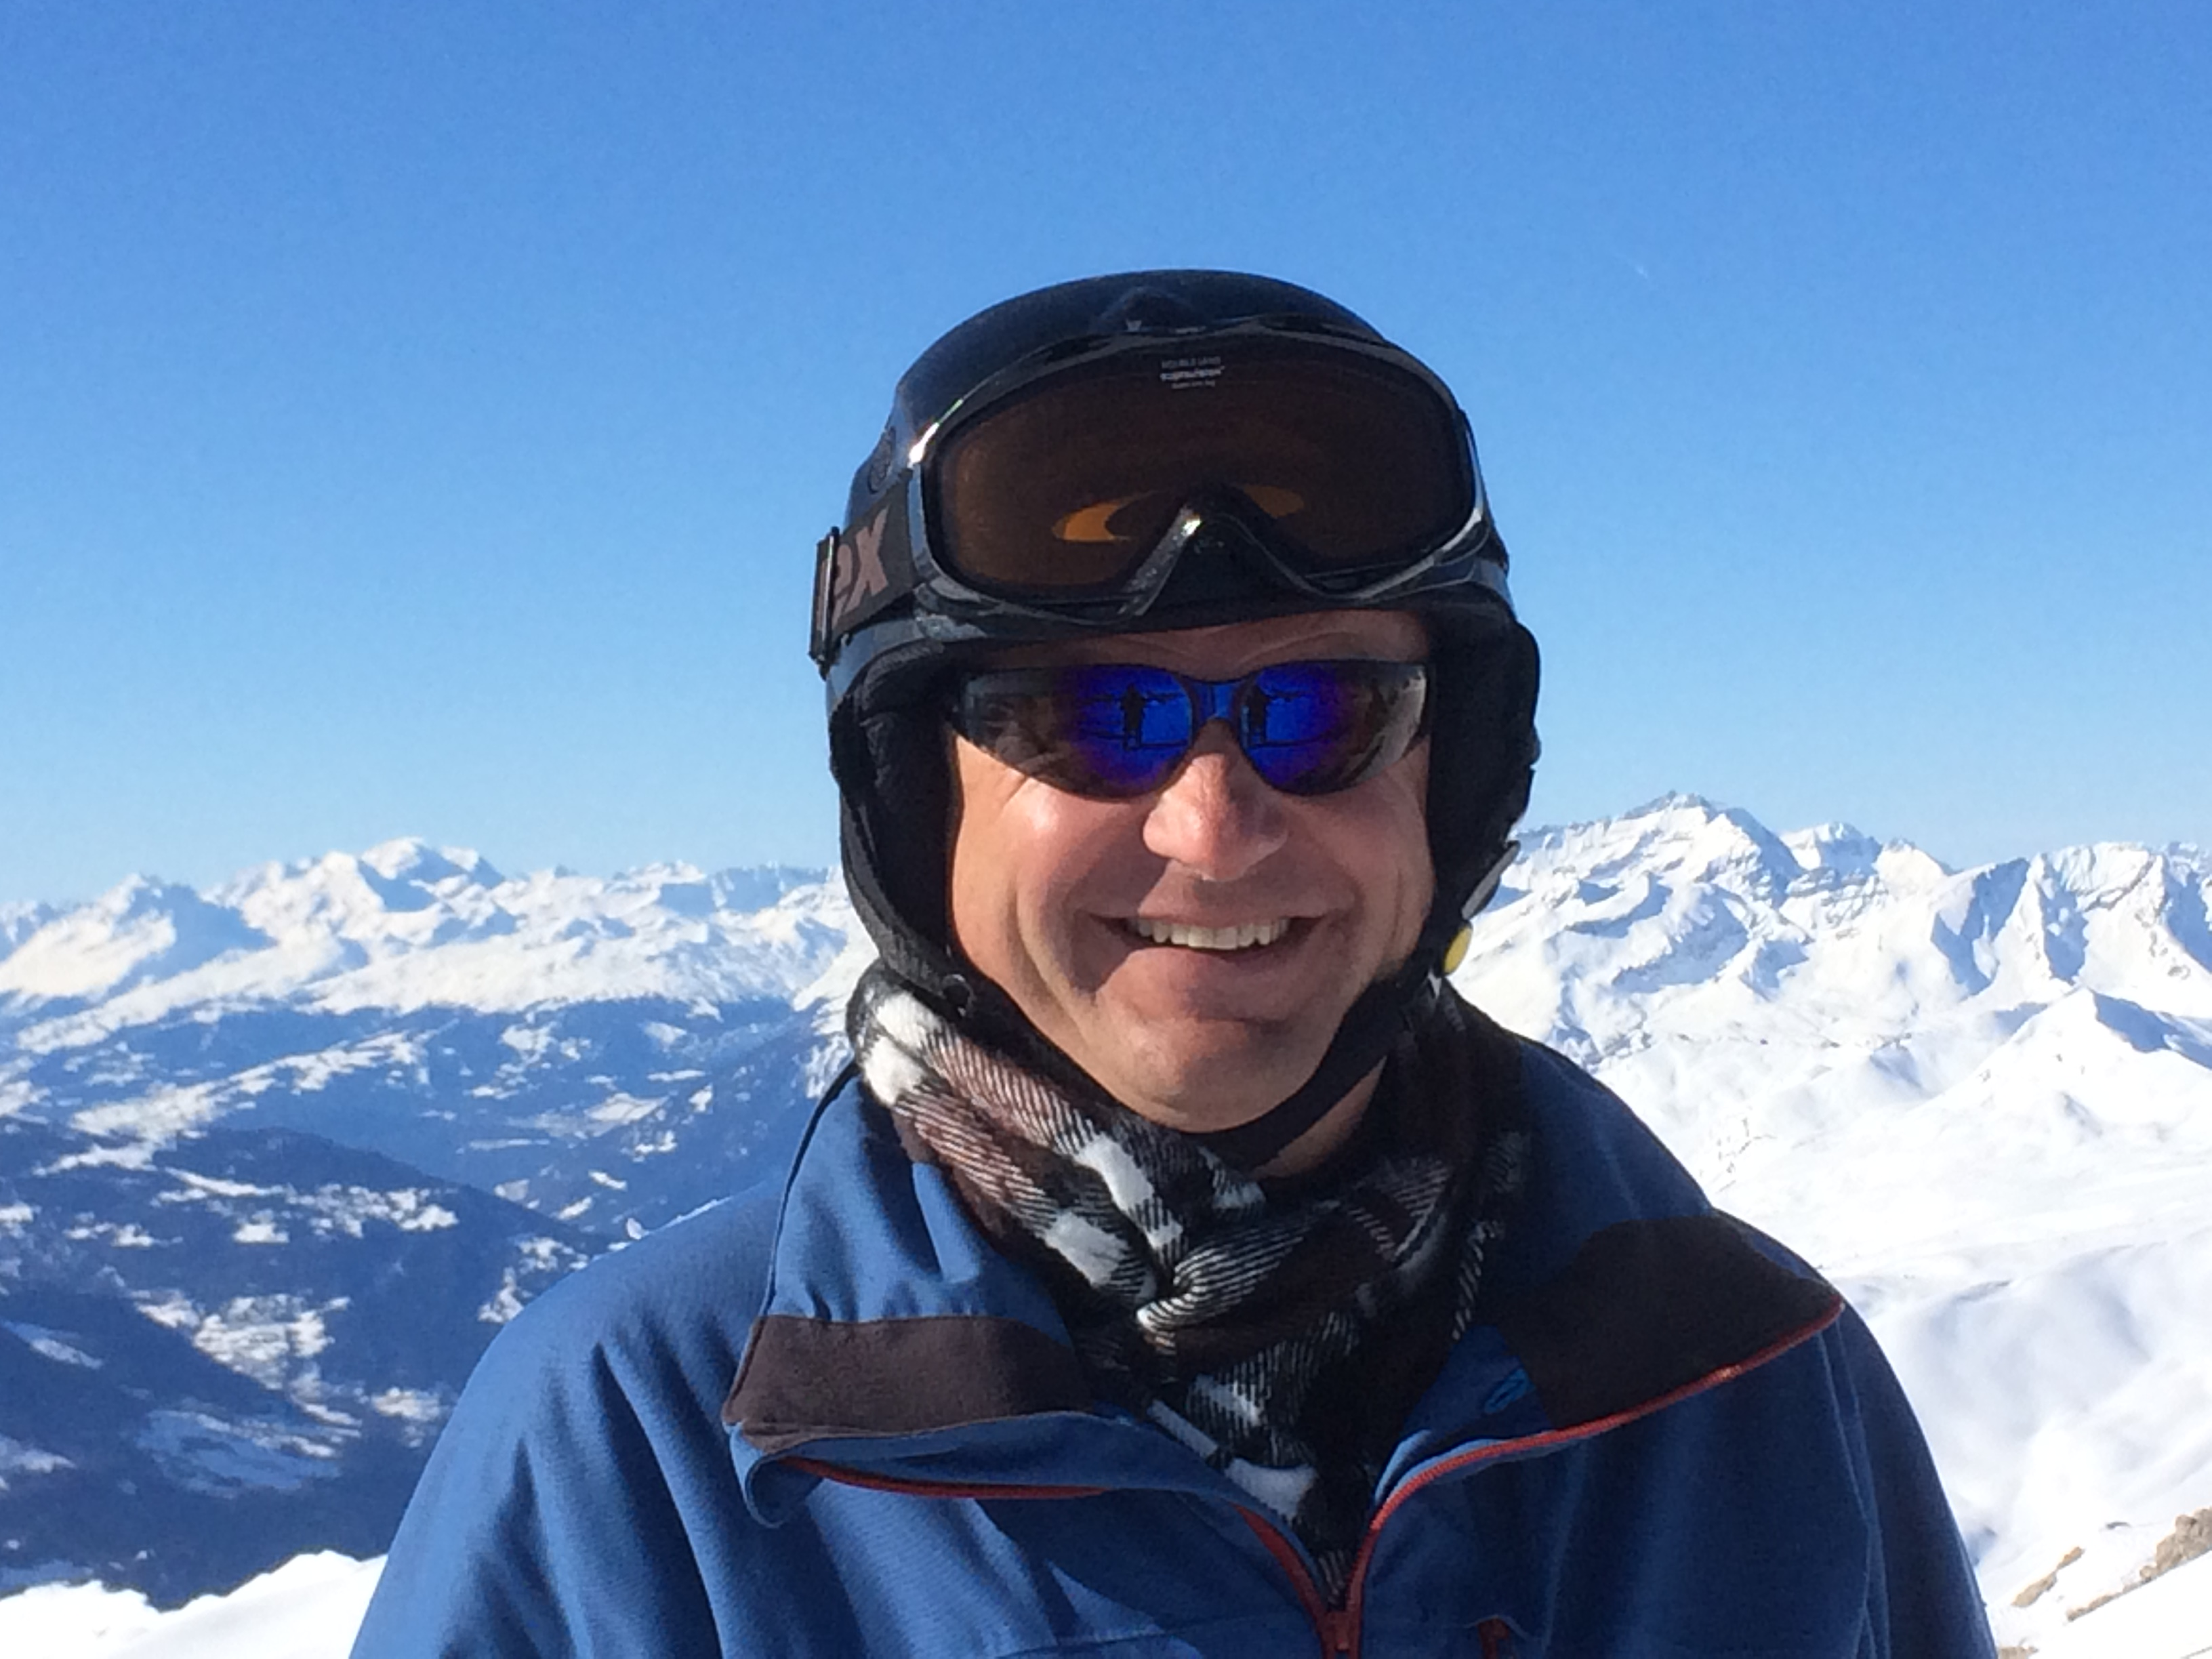 Koni, Ski Instructor for Ben&Joe's, ski school in Davos and Klosters knows the area!